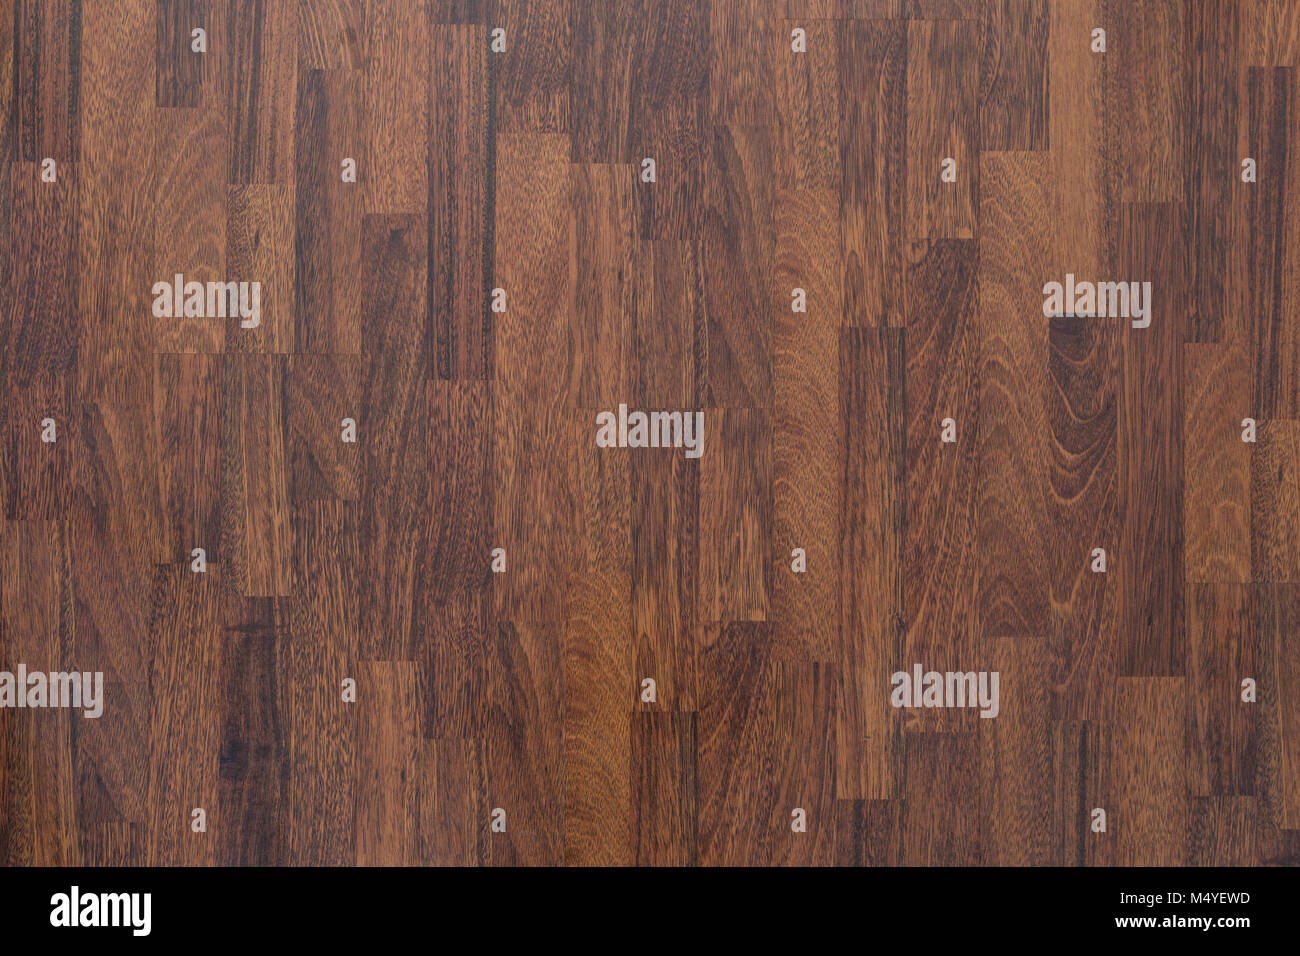 Brown wood laminate flooring texture background in house. - Stock Image